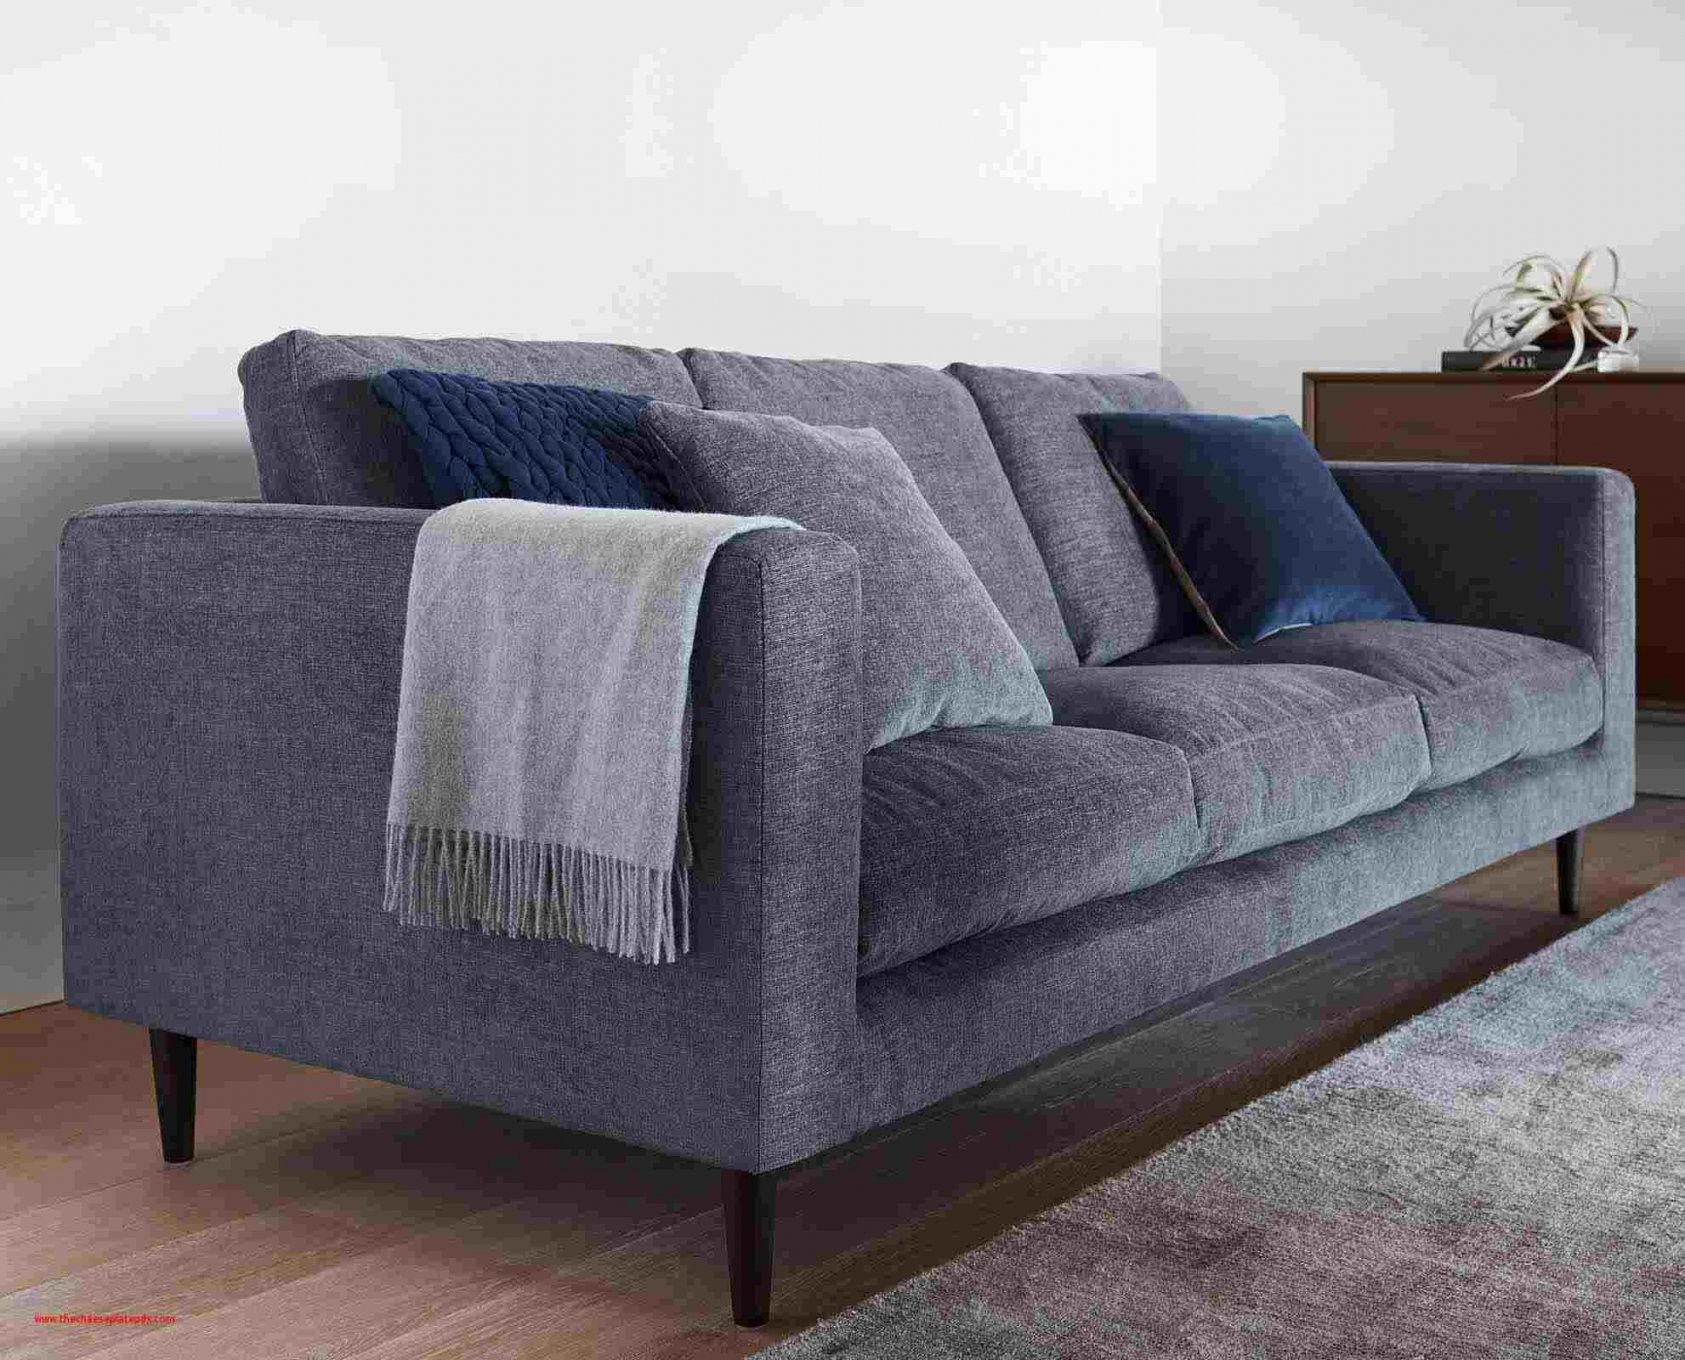 These Days Couch Schlaffunktion Good Deal von 2 Sitzer Sofa Poco Photo